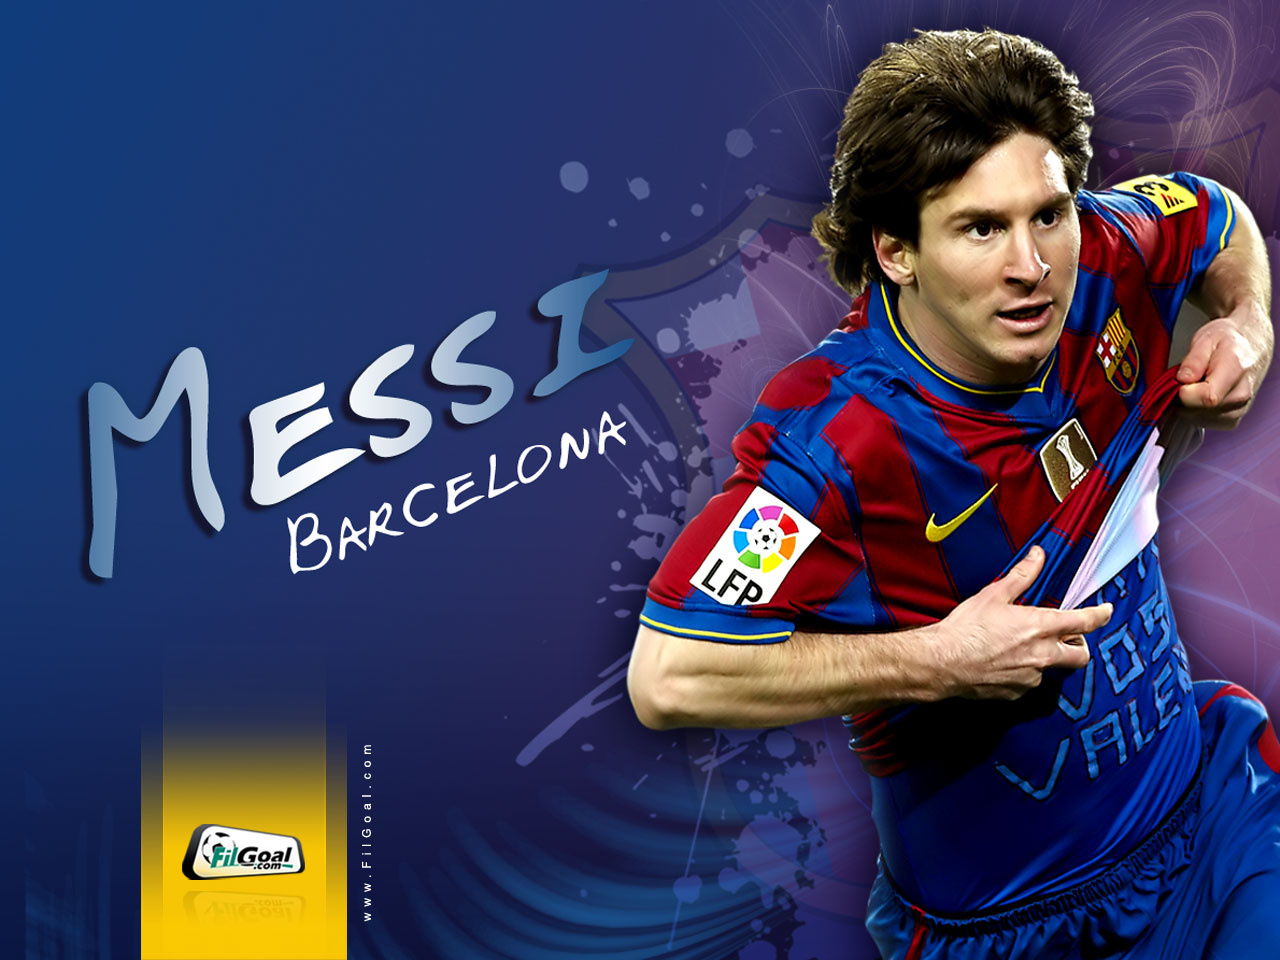 http://1.bp.blogspot.com/_rAsiSS06Zgg/TQj7fbVZkeI/AAAAAAAABis/3l8pz2TmDpo/s1600/Messi-wallpaper-and-photo.jpg